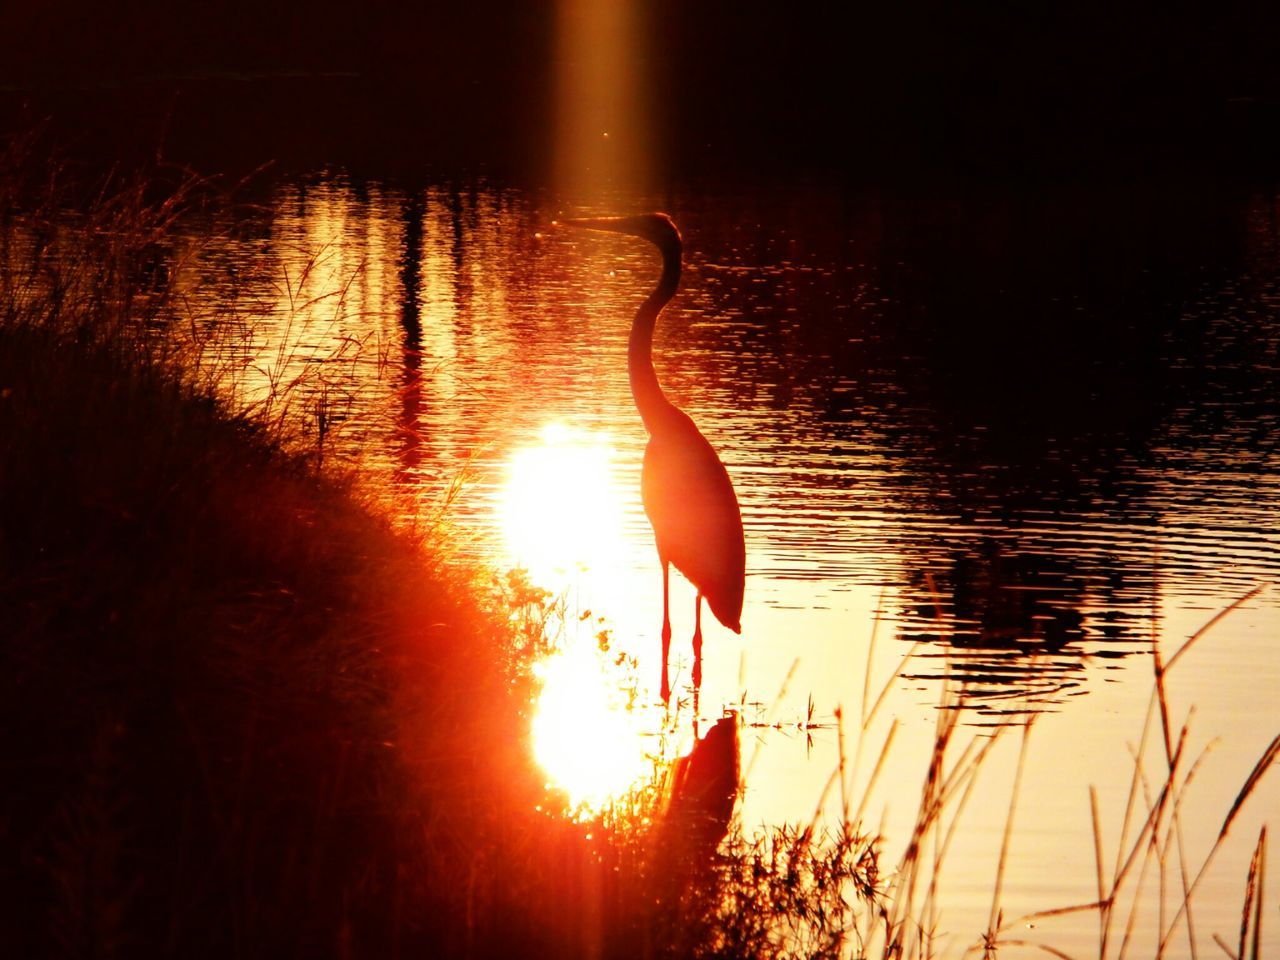 reflection, sunset, lake, water, sun, sunlight, nature, no people, outdoors, silhouette, scenics, beauty in nature, swan, flamingo, swimming, bird, sky, day